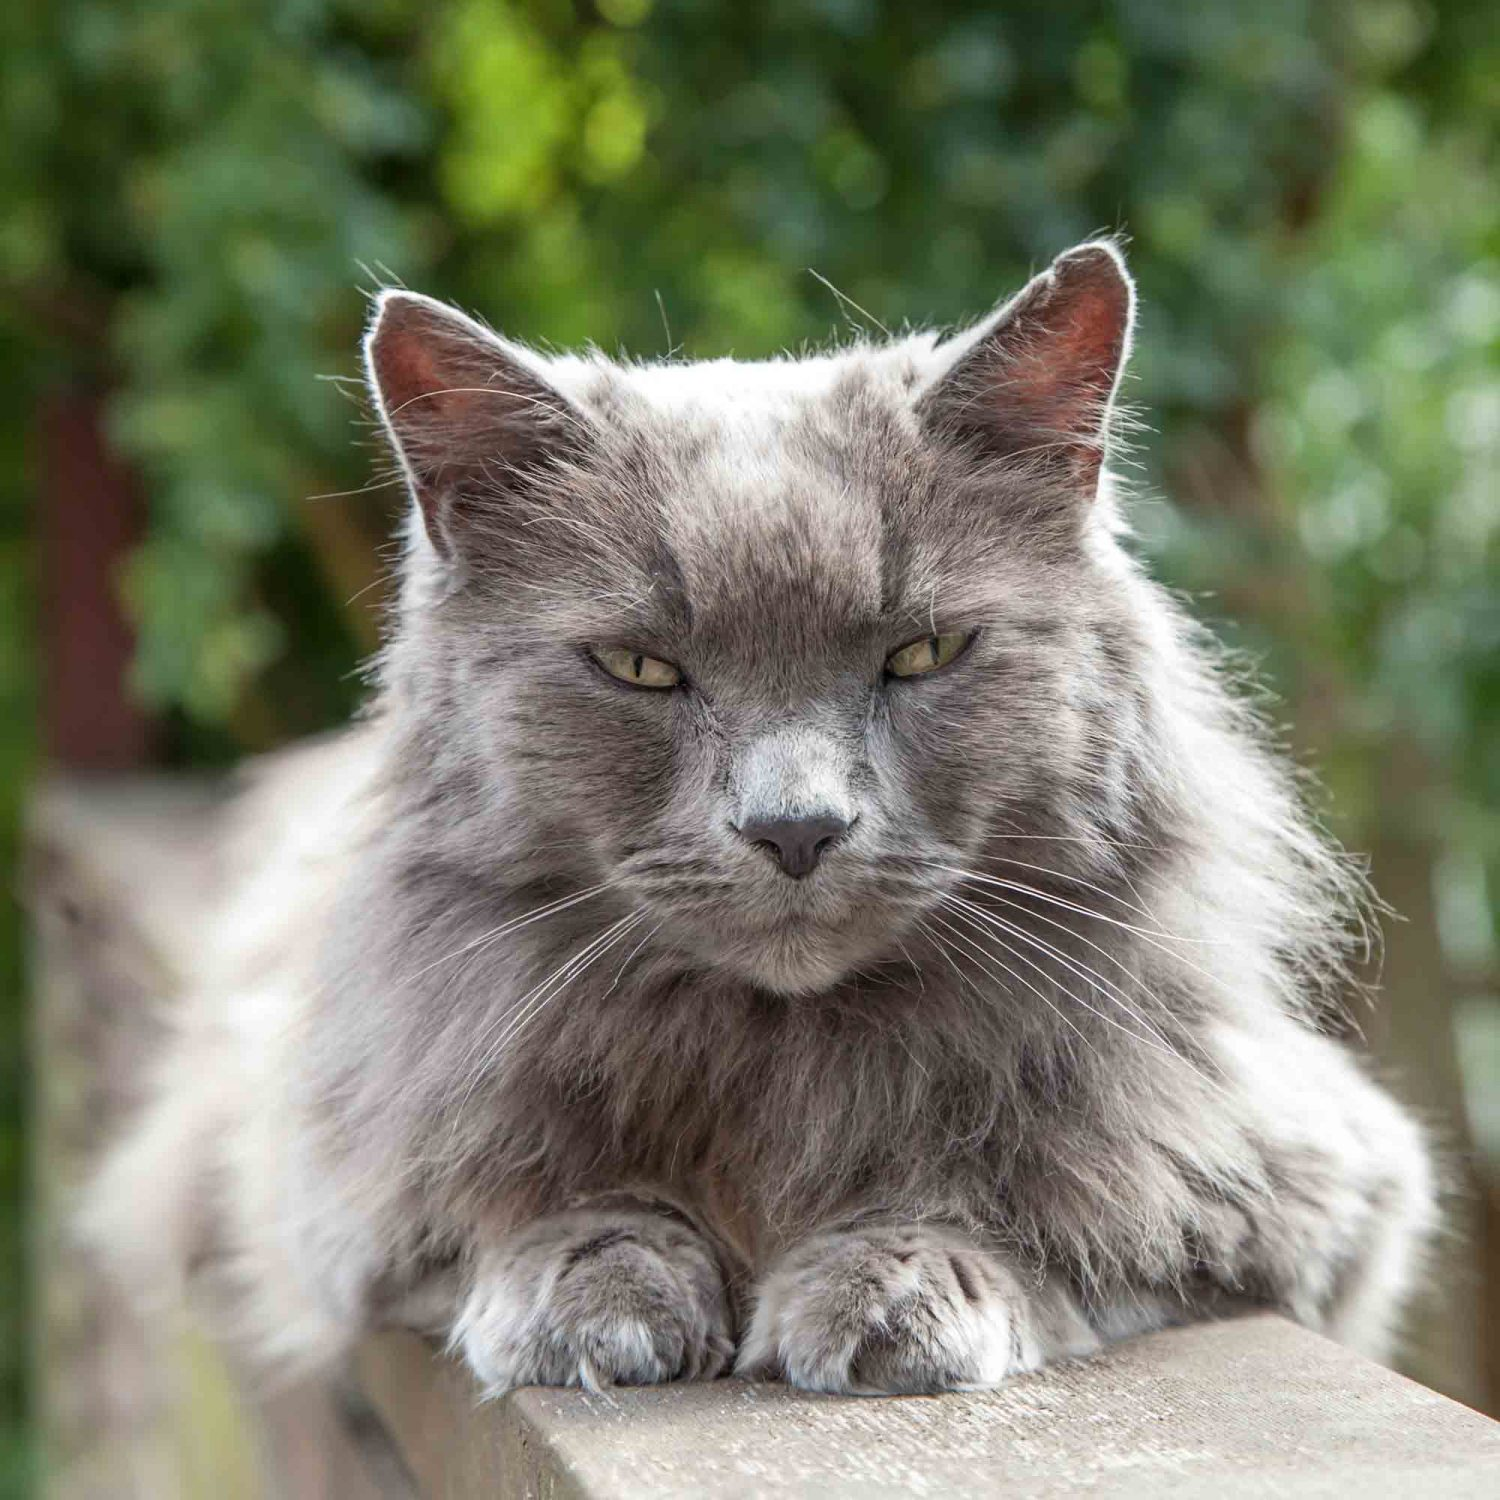 Proper senior cat care is vital to your aging cat